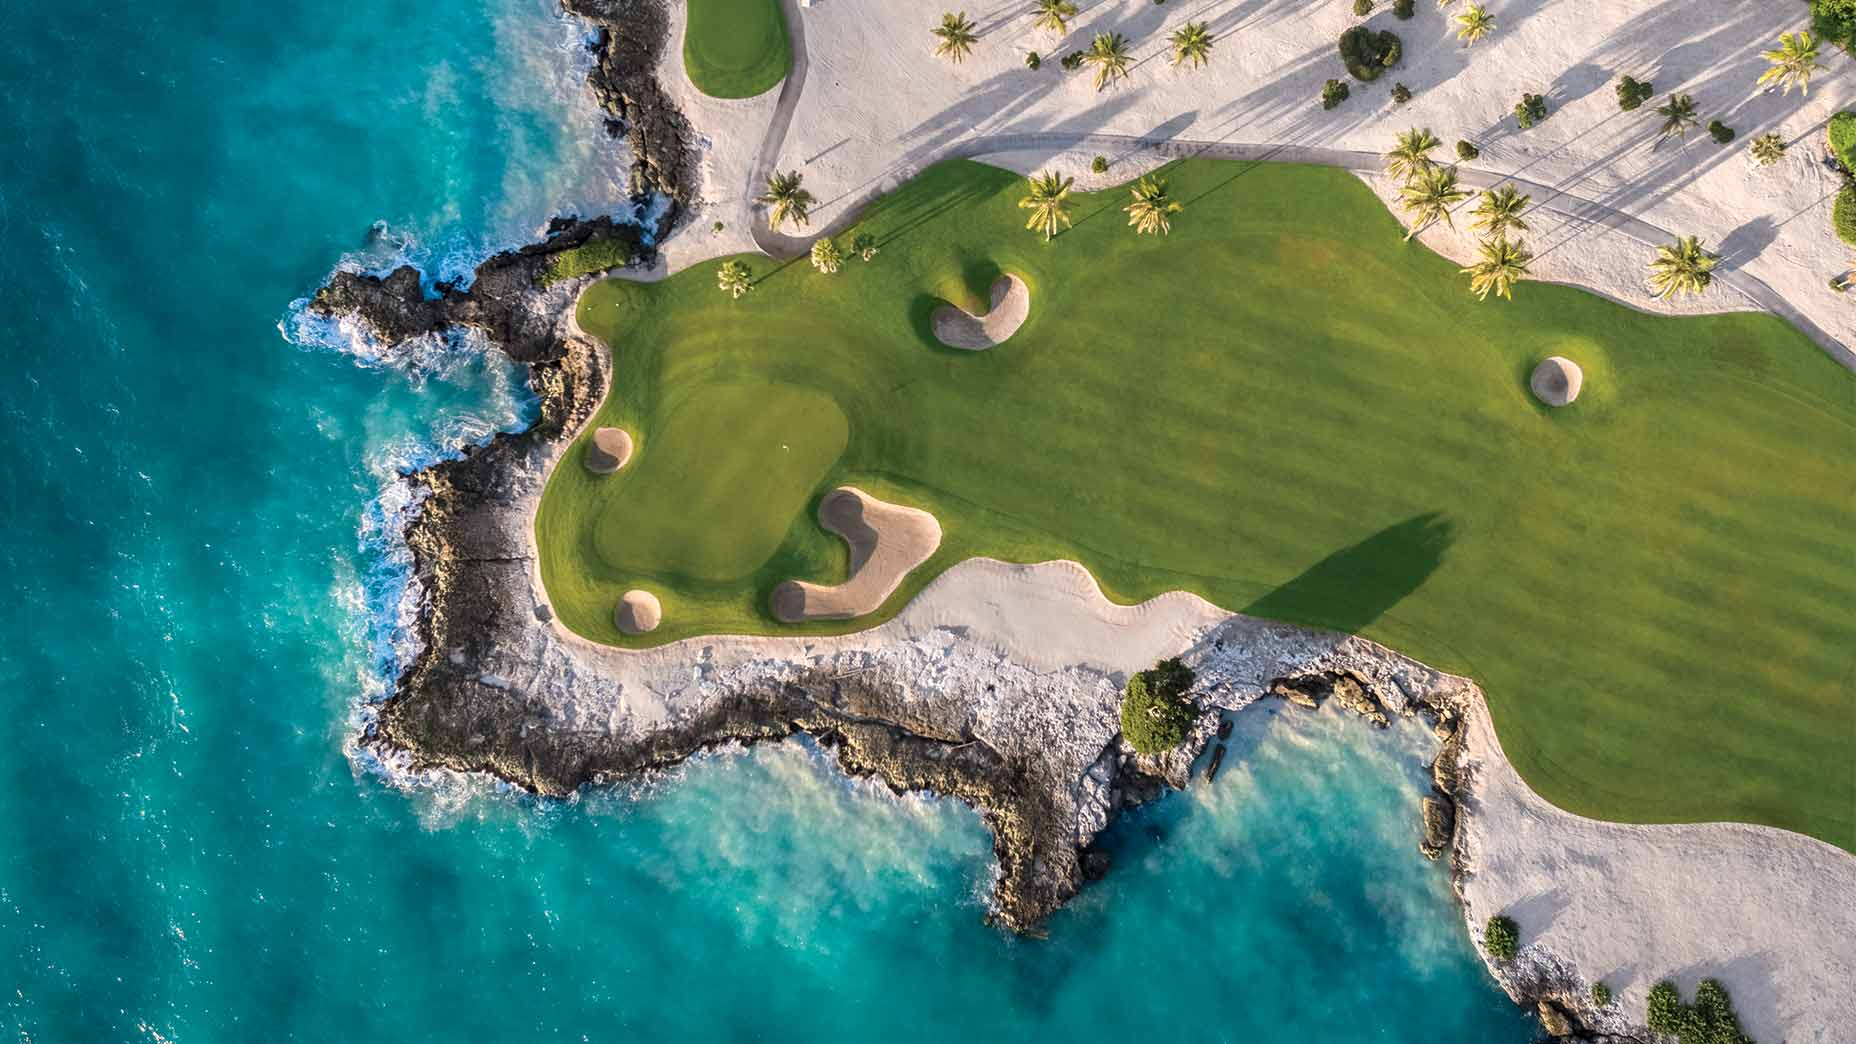 The 12th hole at the Jack Nicklaus–designed Punta Espada proves there's magic in the air these days in all things golf.